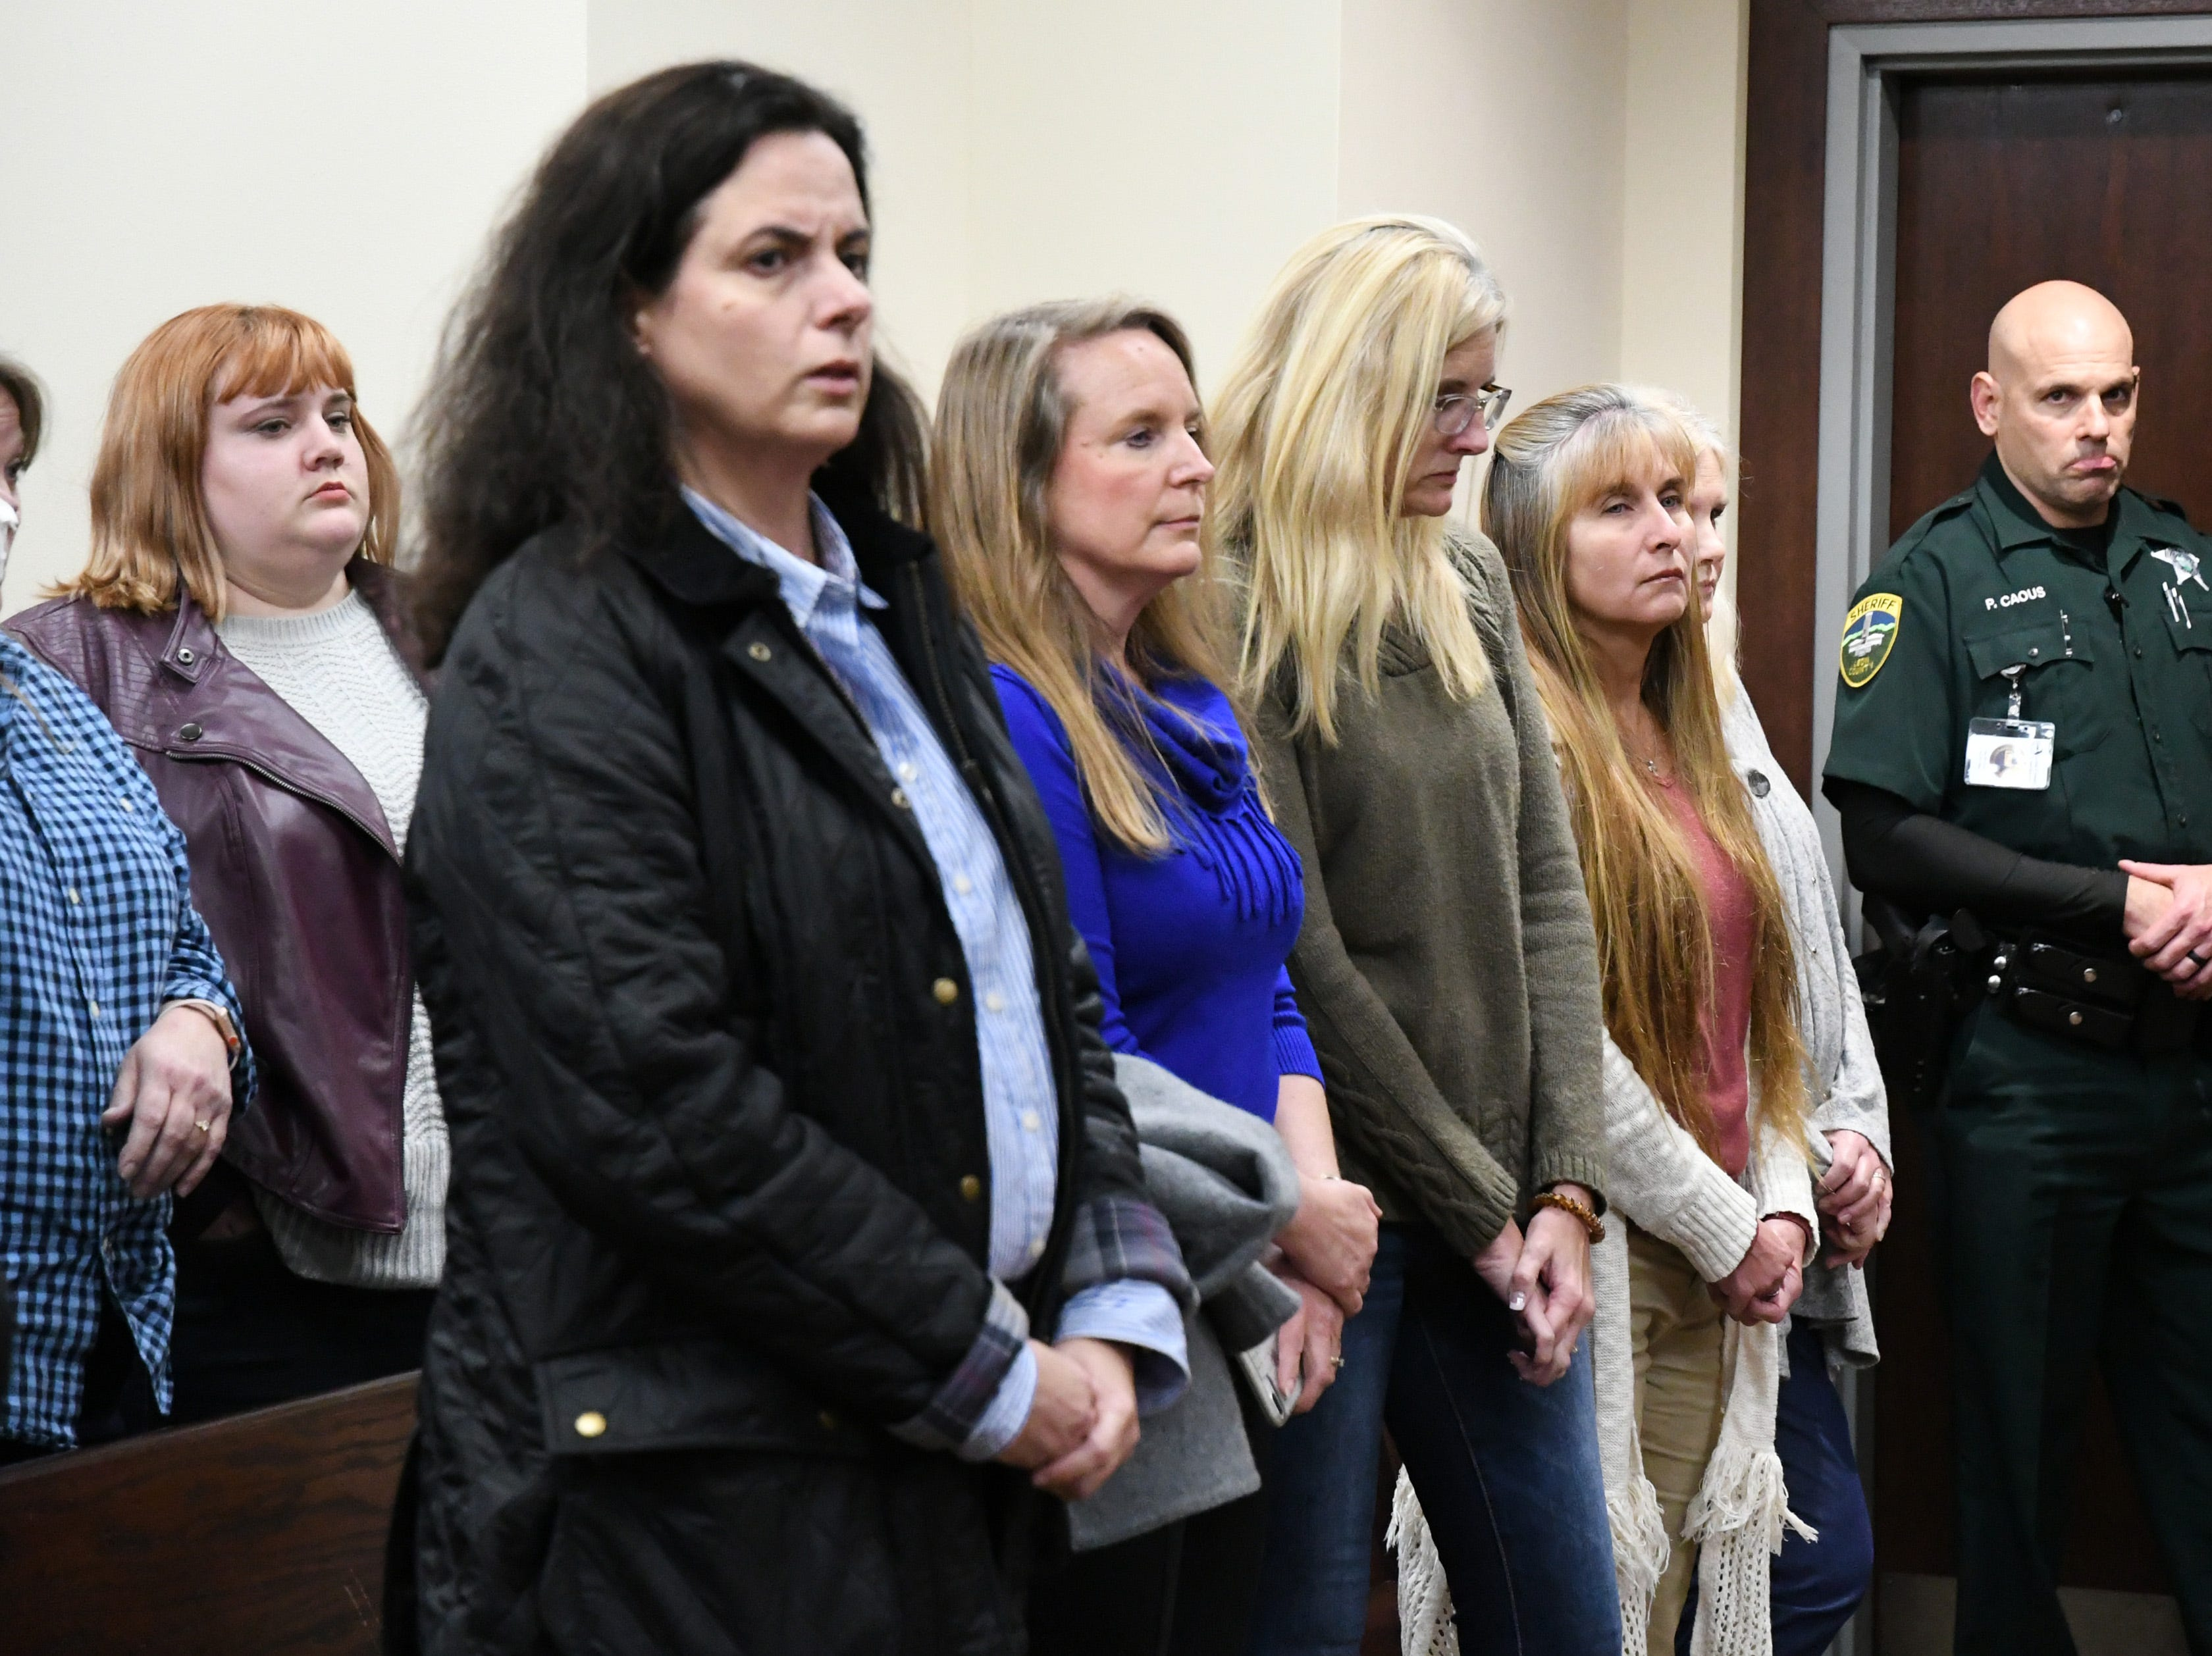 Family and friends of Denise Williams, the woman on trial for the murder of her late husband Mike Williams, await the verdicts from the jury, Friday, Dec. 14, 2018.